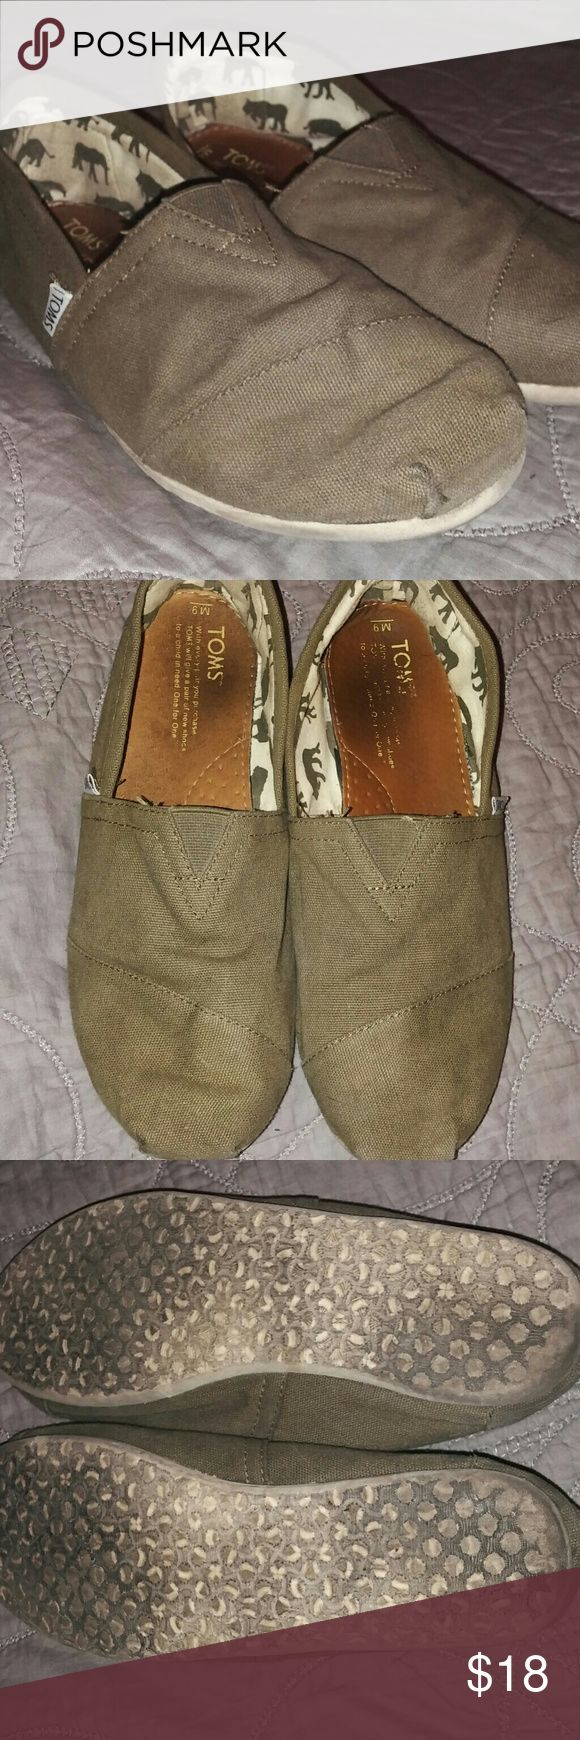 Olive Green Men Toms These have been worn a few times and you can see some wear inside but the outside of the shoes look in great condition! Size 9 men's slip on Toms Toms Shoes Sneakers